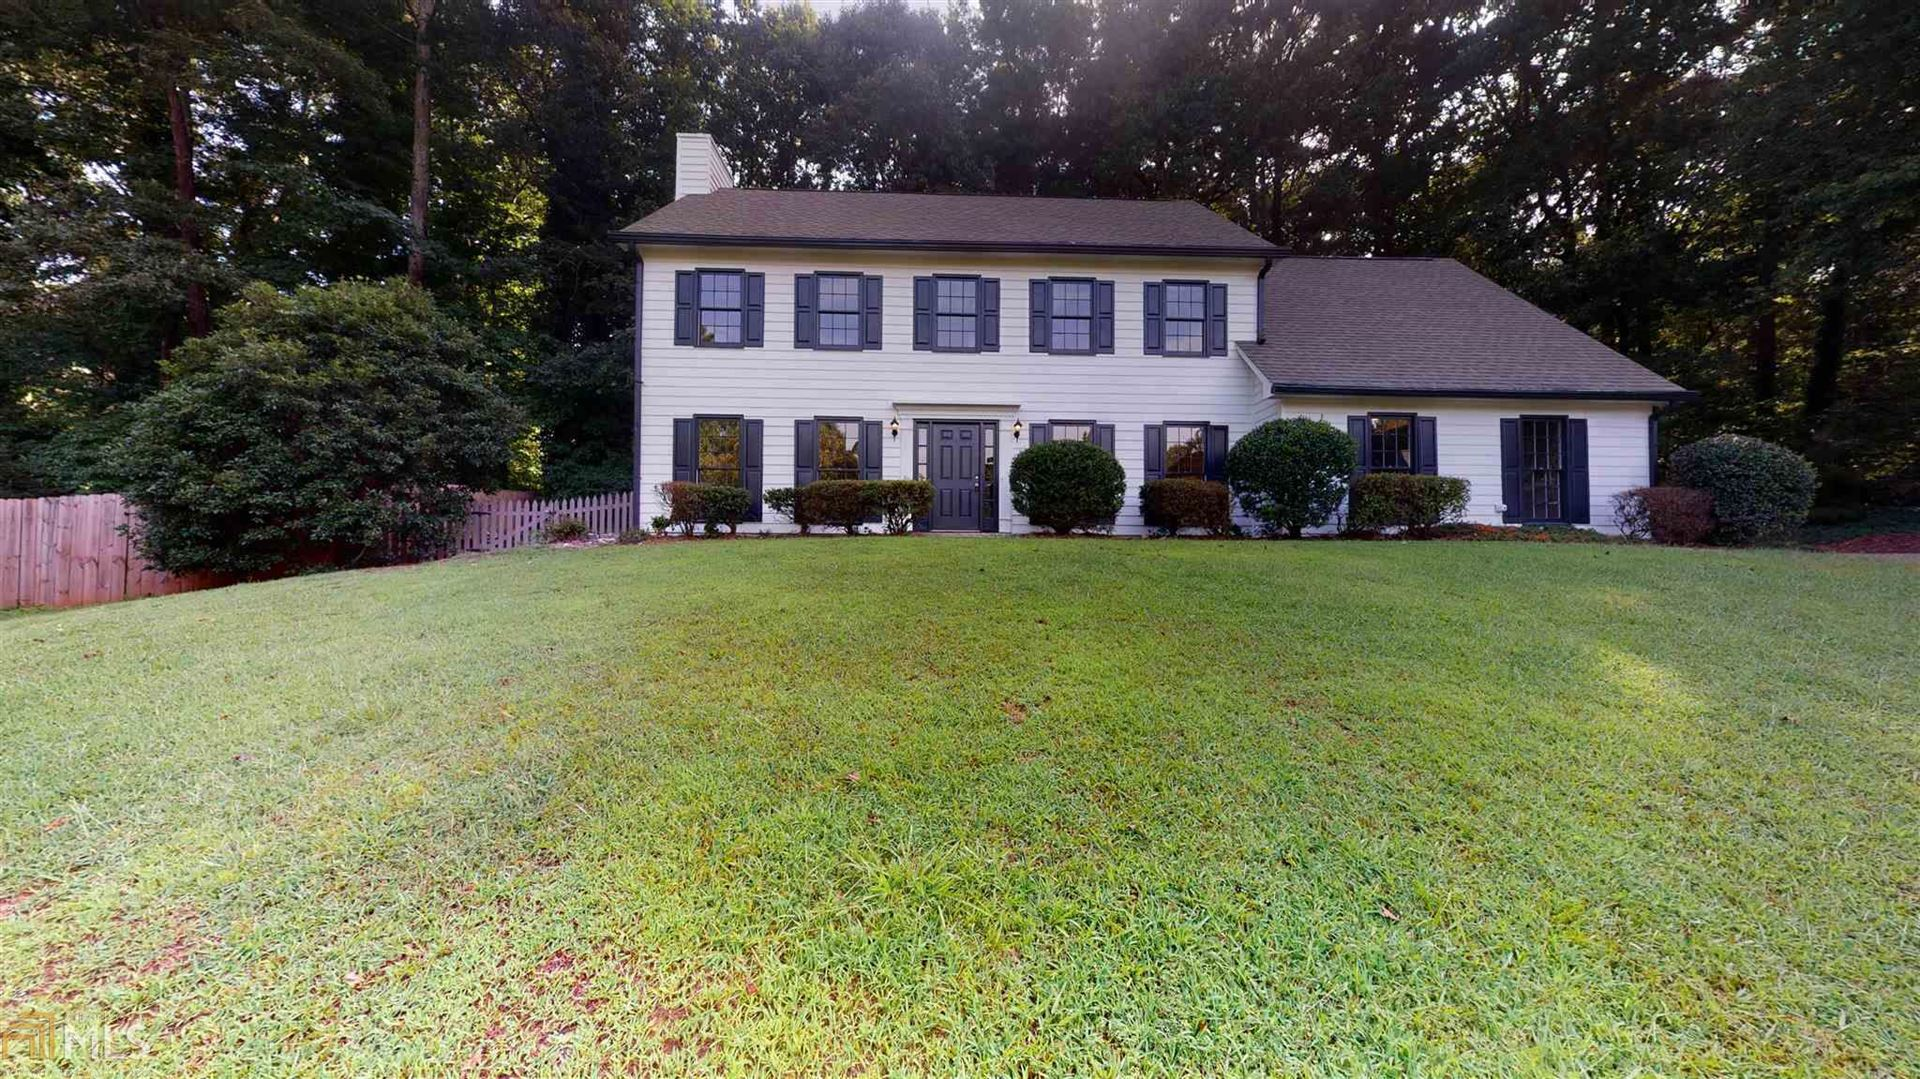 3461 Parsons Greene Trl, Powder Springs, GA 30127 - MLS#: 8894797